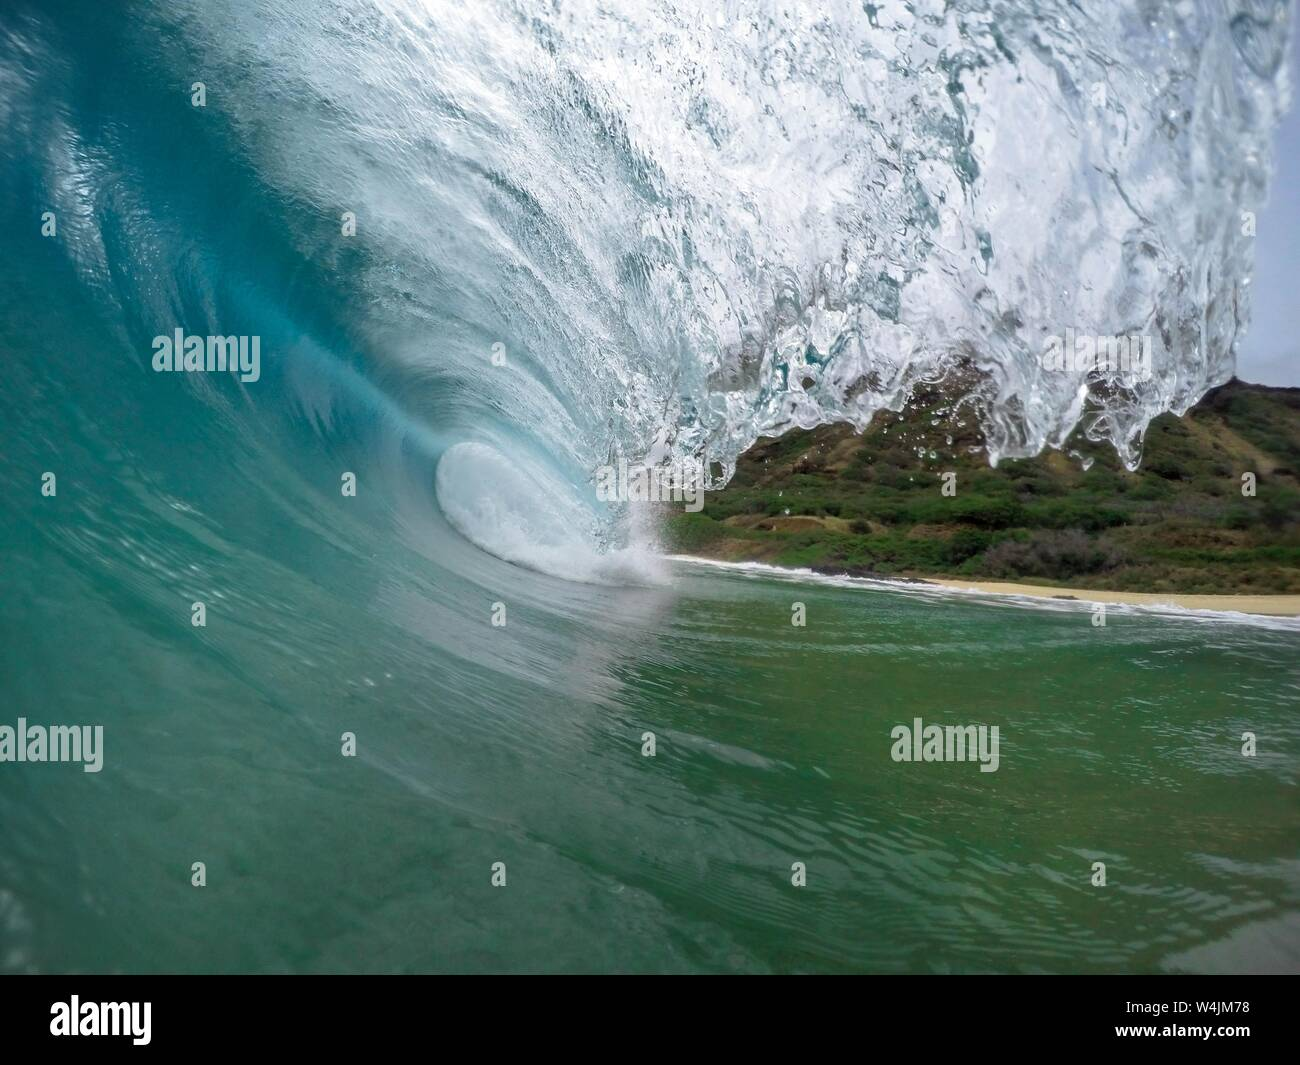 A Beautifully Detailed Closeup Focused Shot Of Strong Ocean